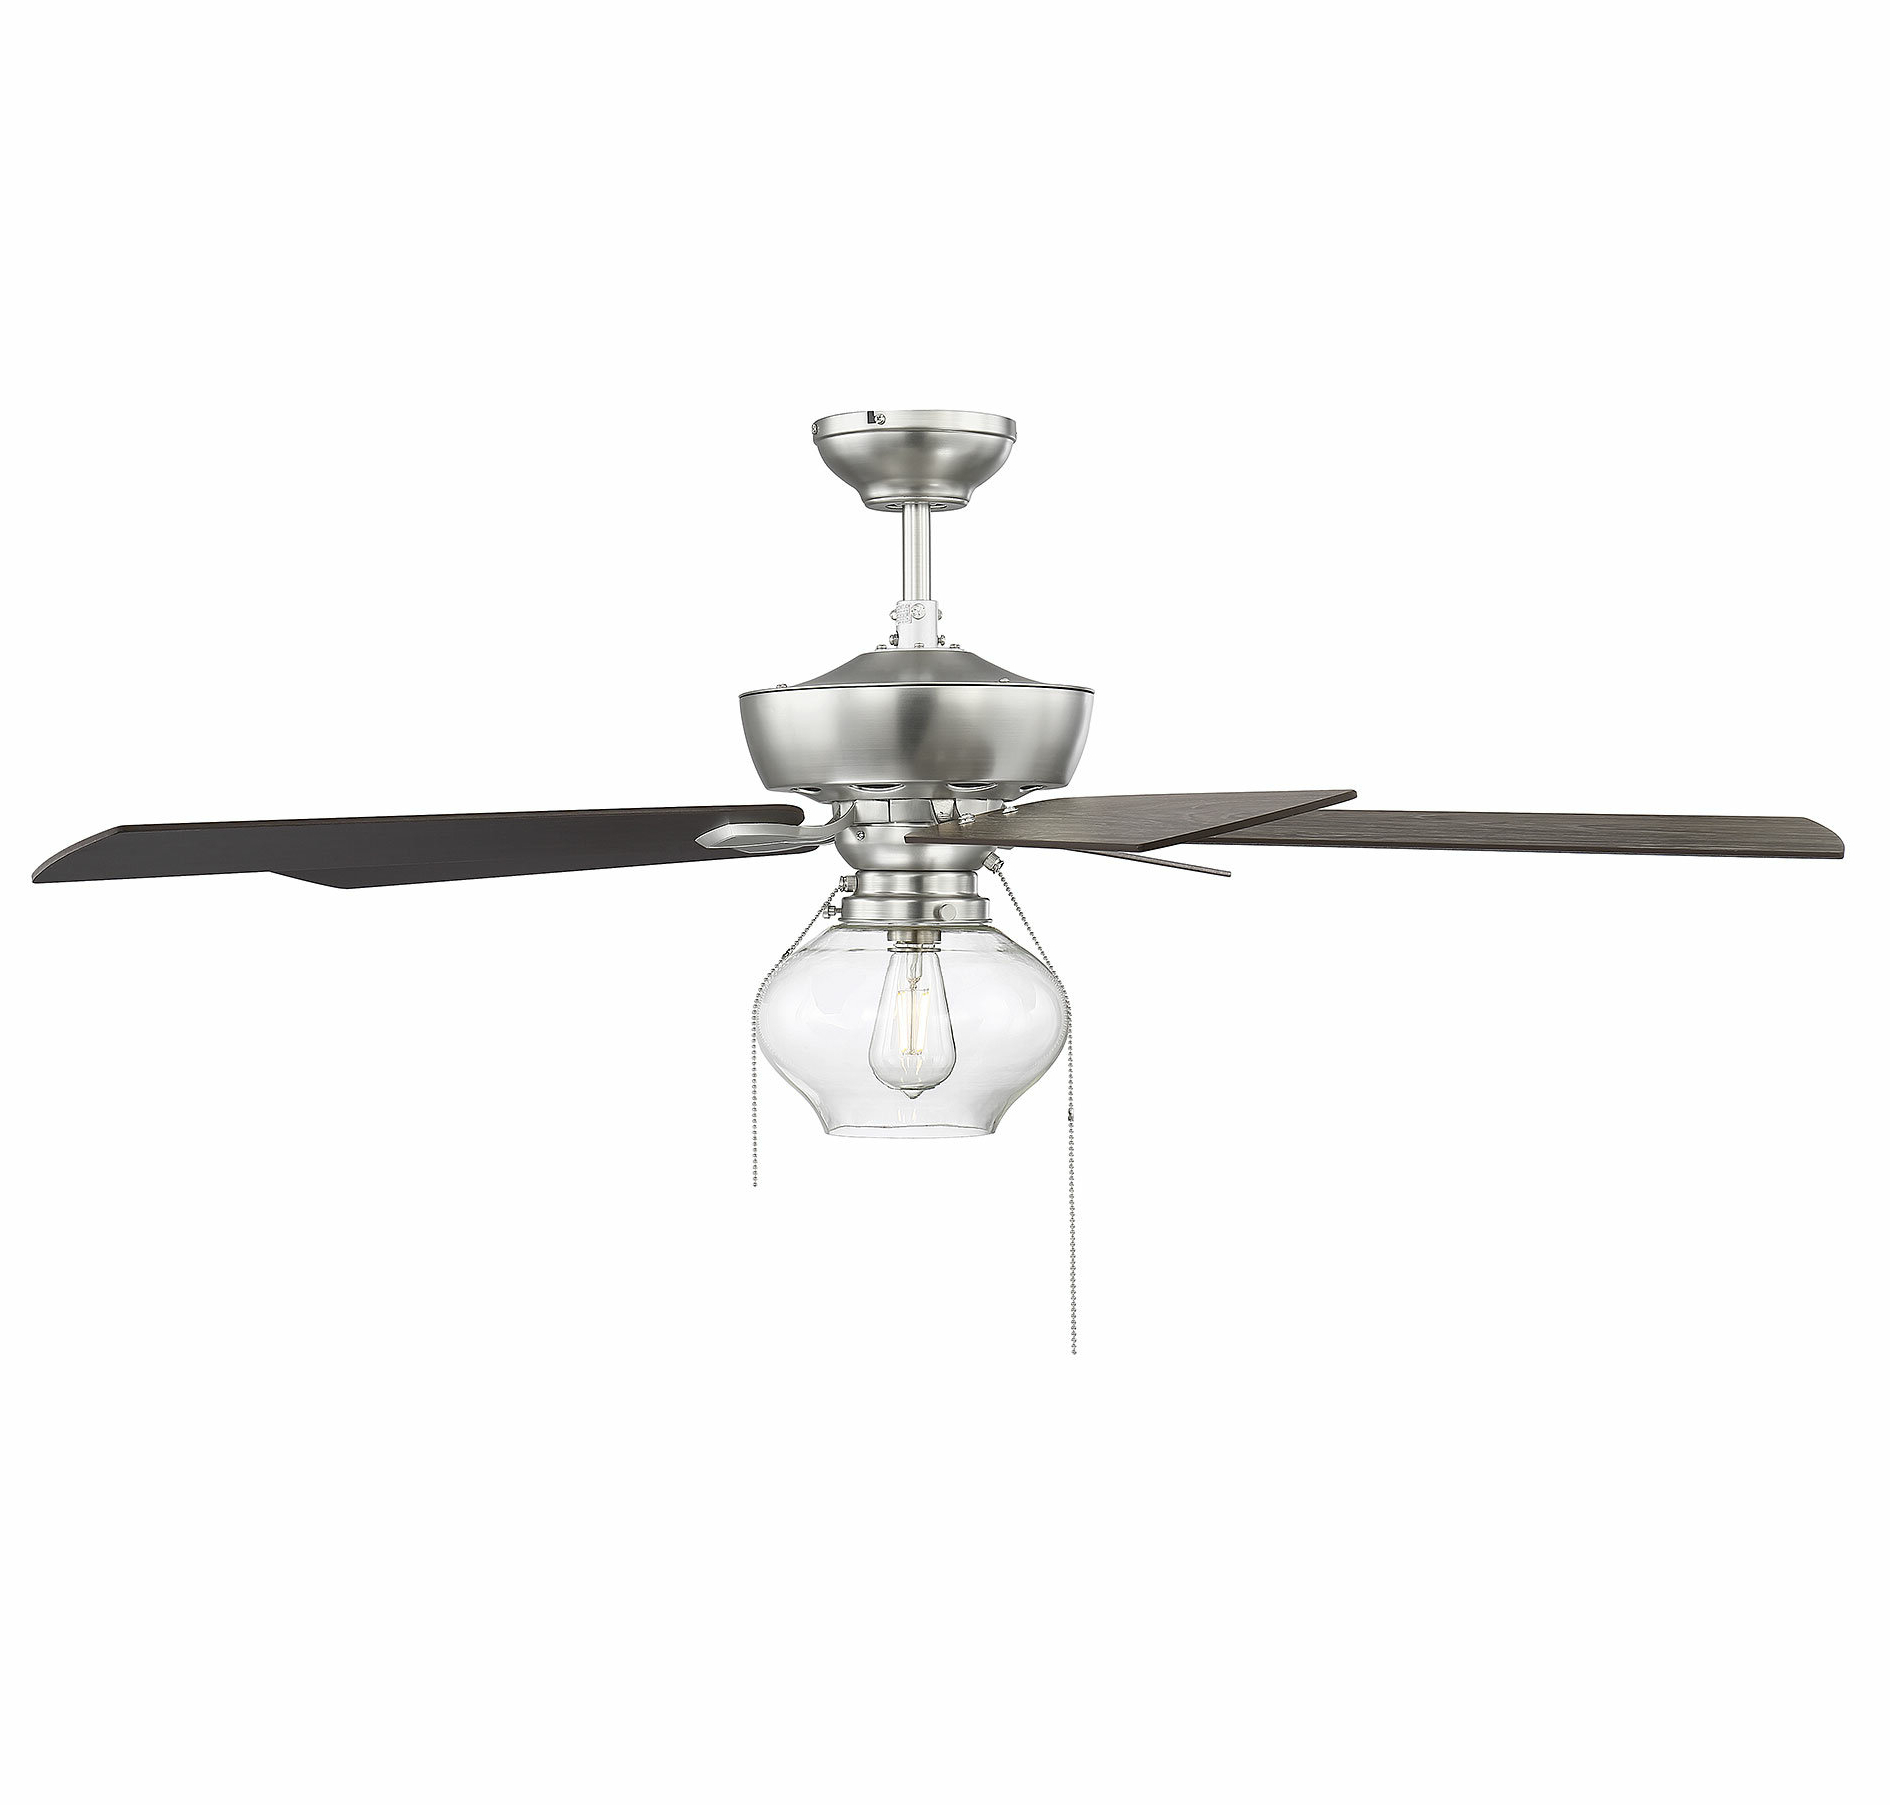 "Kyla 5 Blade Ceiling Fans Within Preferred 52"" Lundy 5 Blade Ceiling Fan, Light Kit Included (View 11 of 20)"